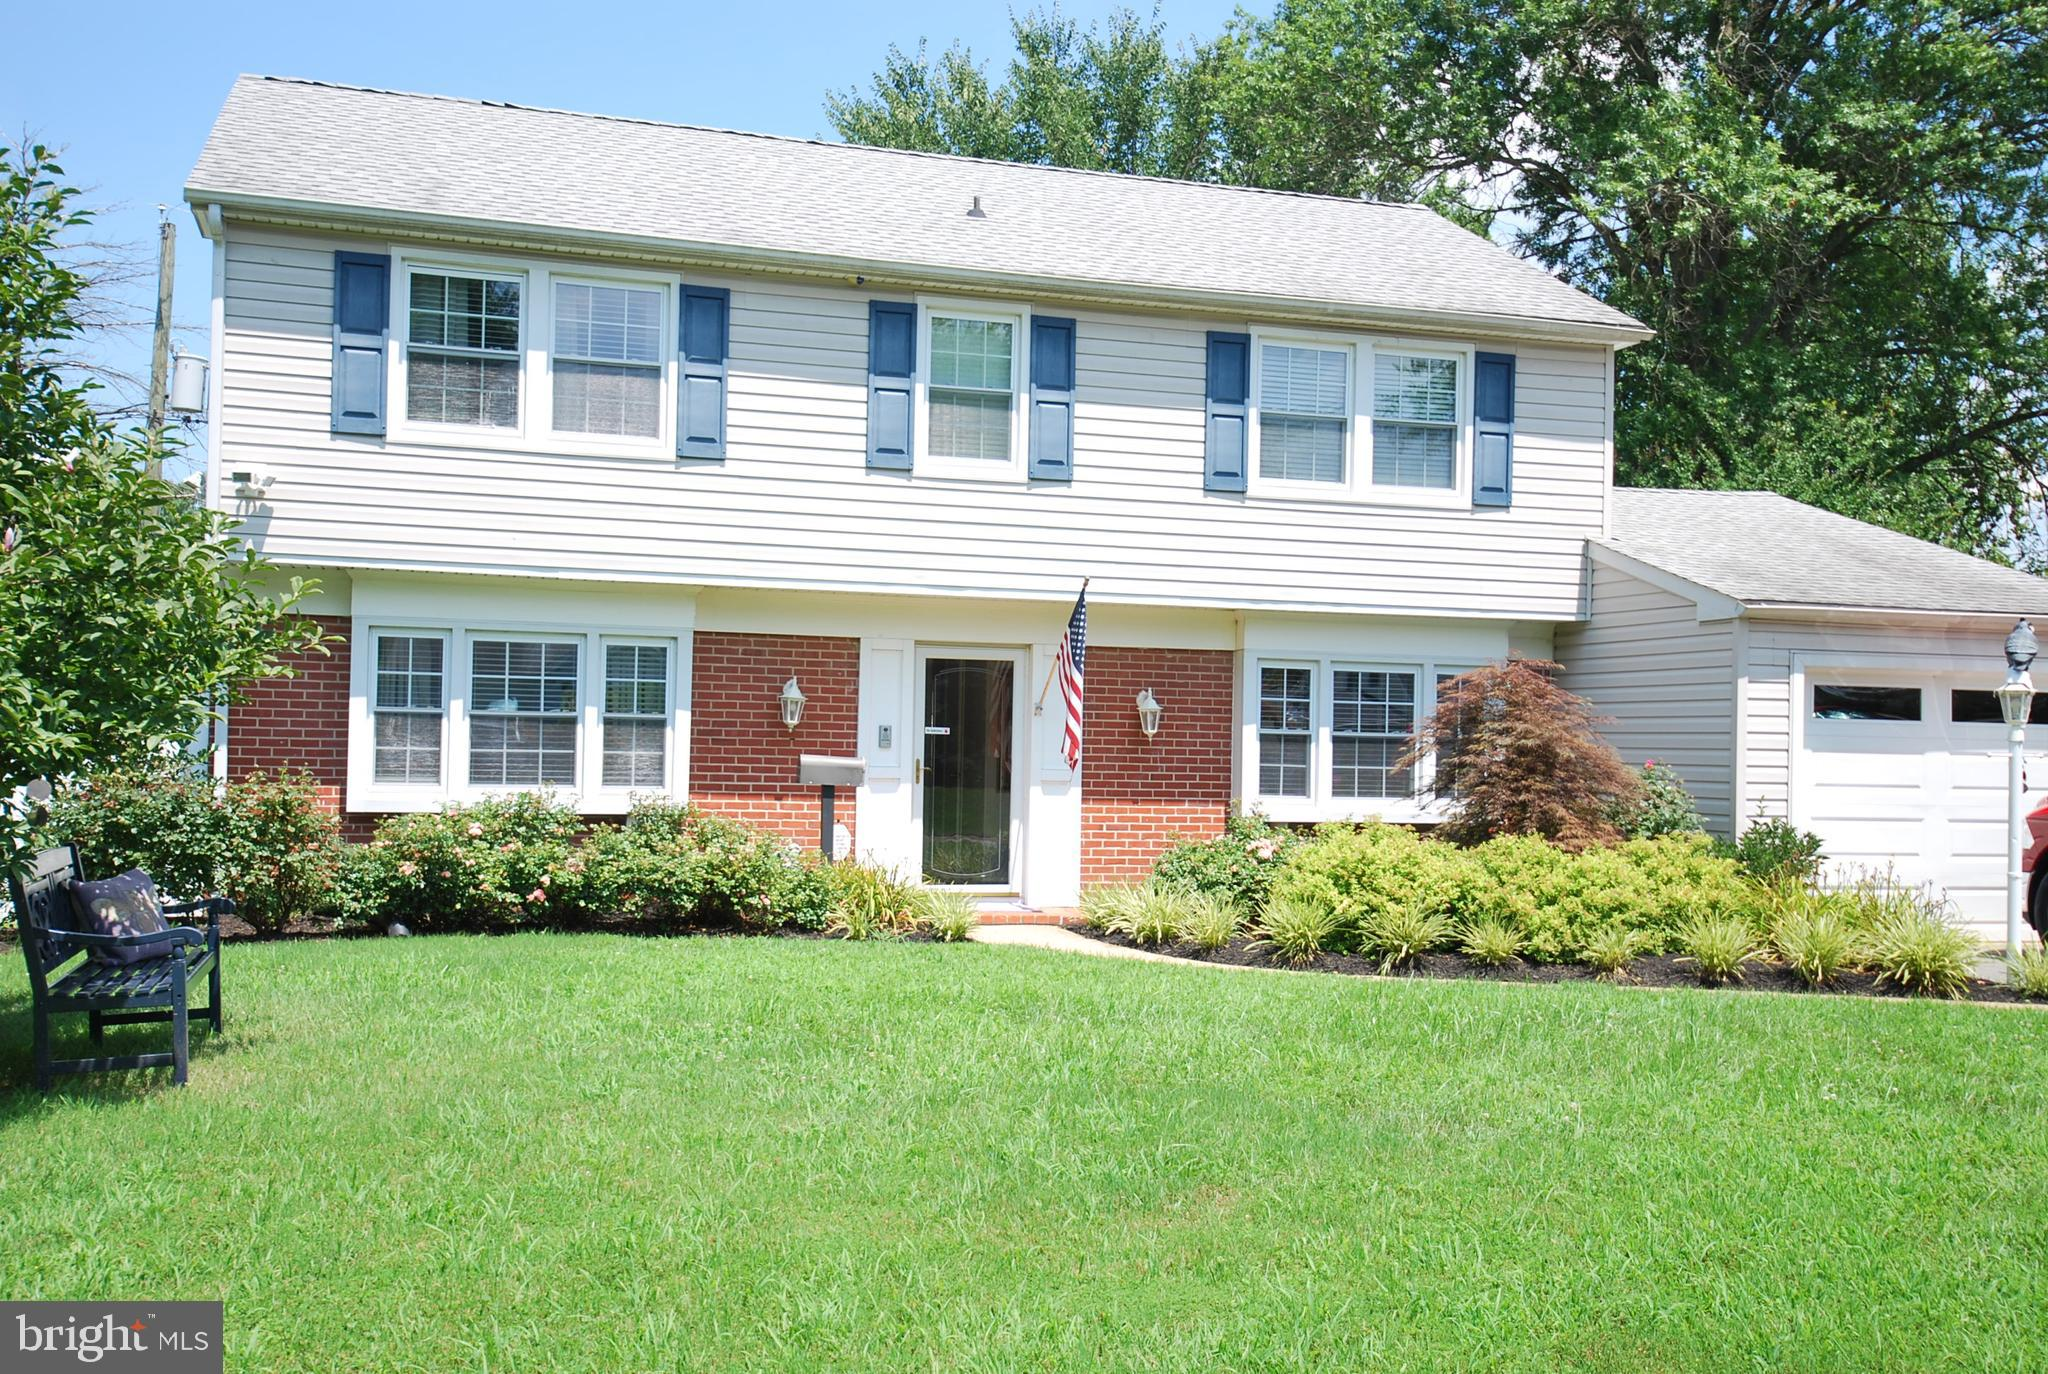 12404 SHELTER LANE, BOWIE, MD 20715